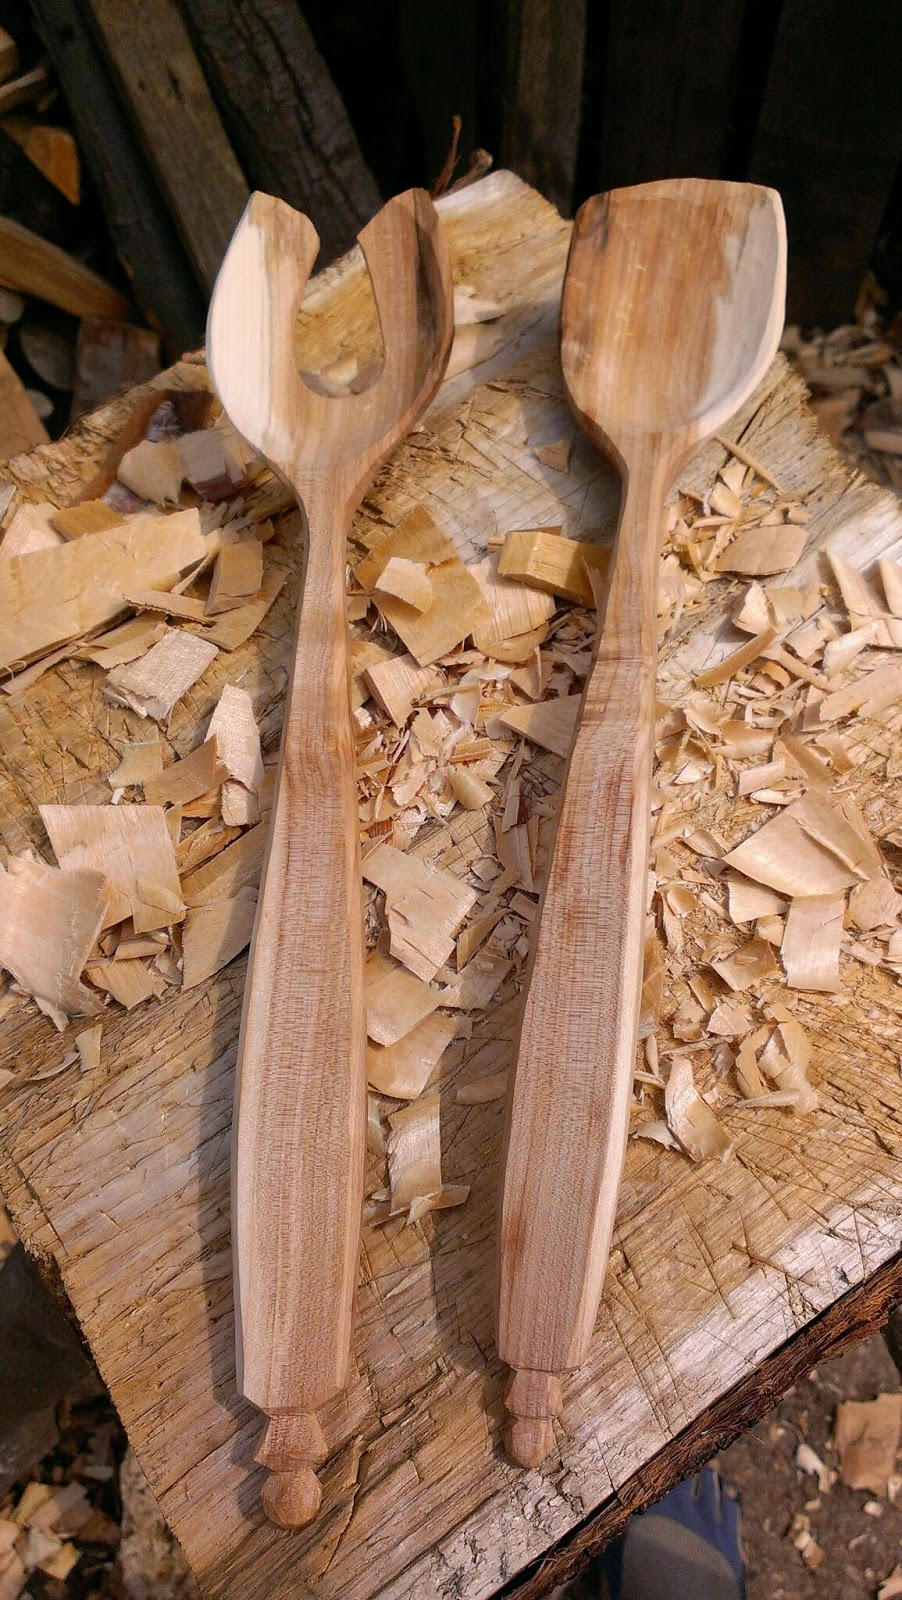 Rowan salad servers — sylva spoon